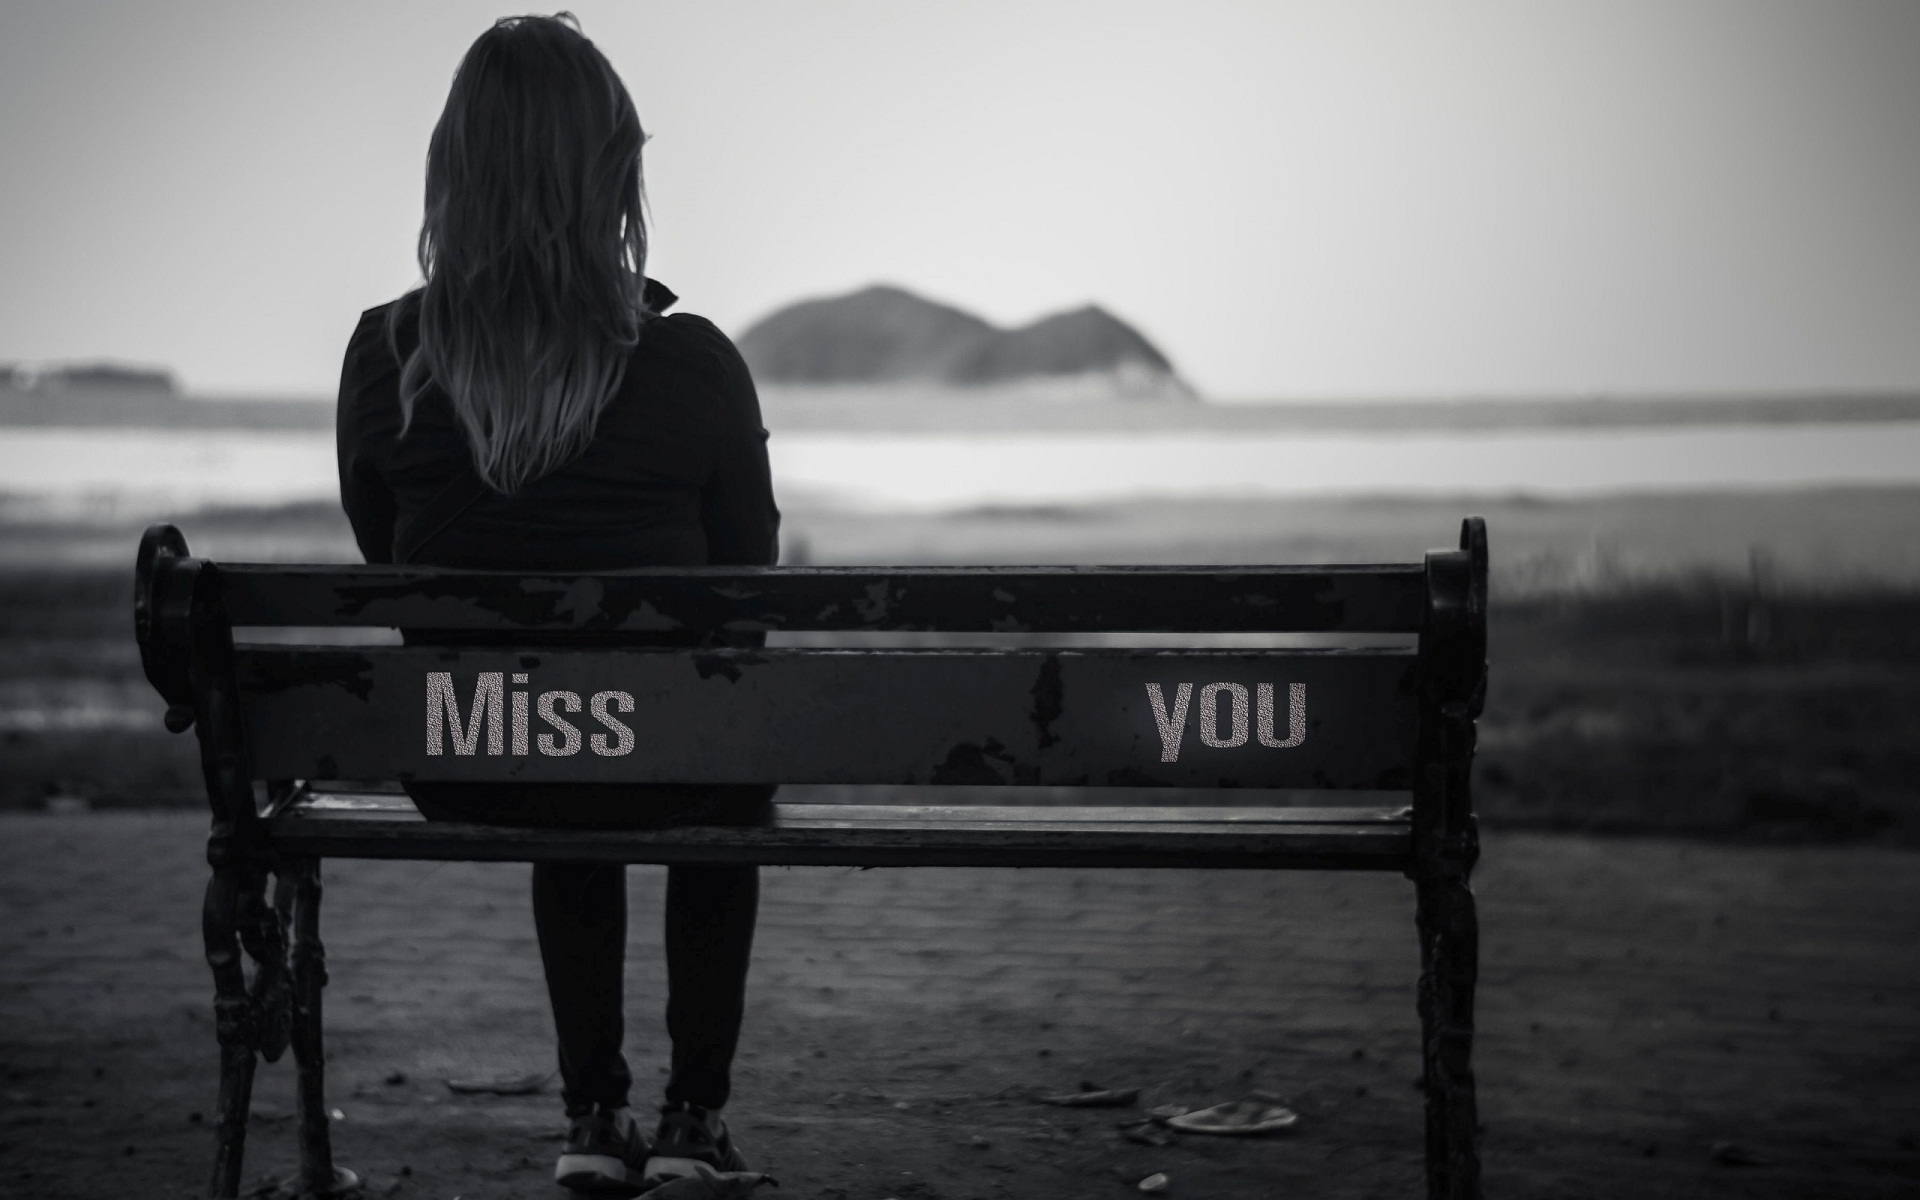 I-miss-you-girl-waiting-for-her-lover